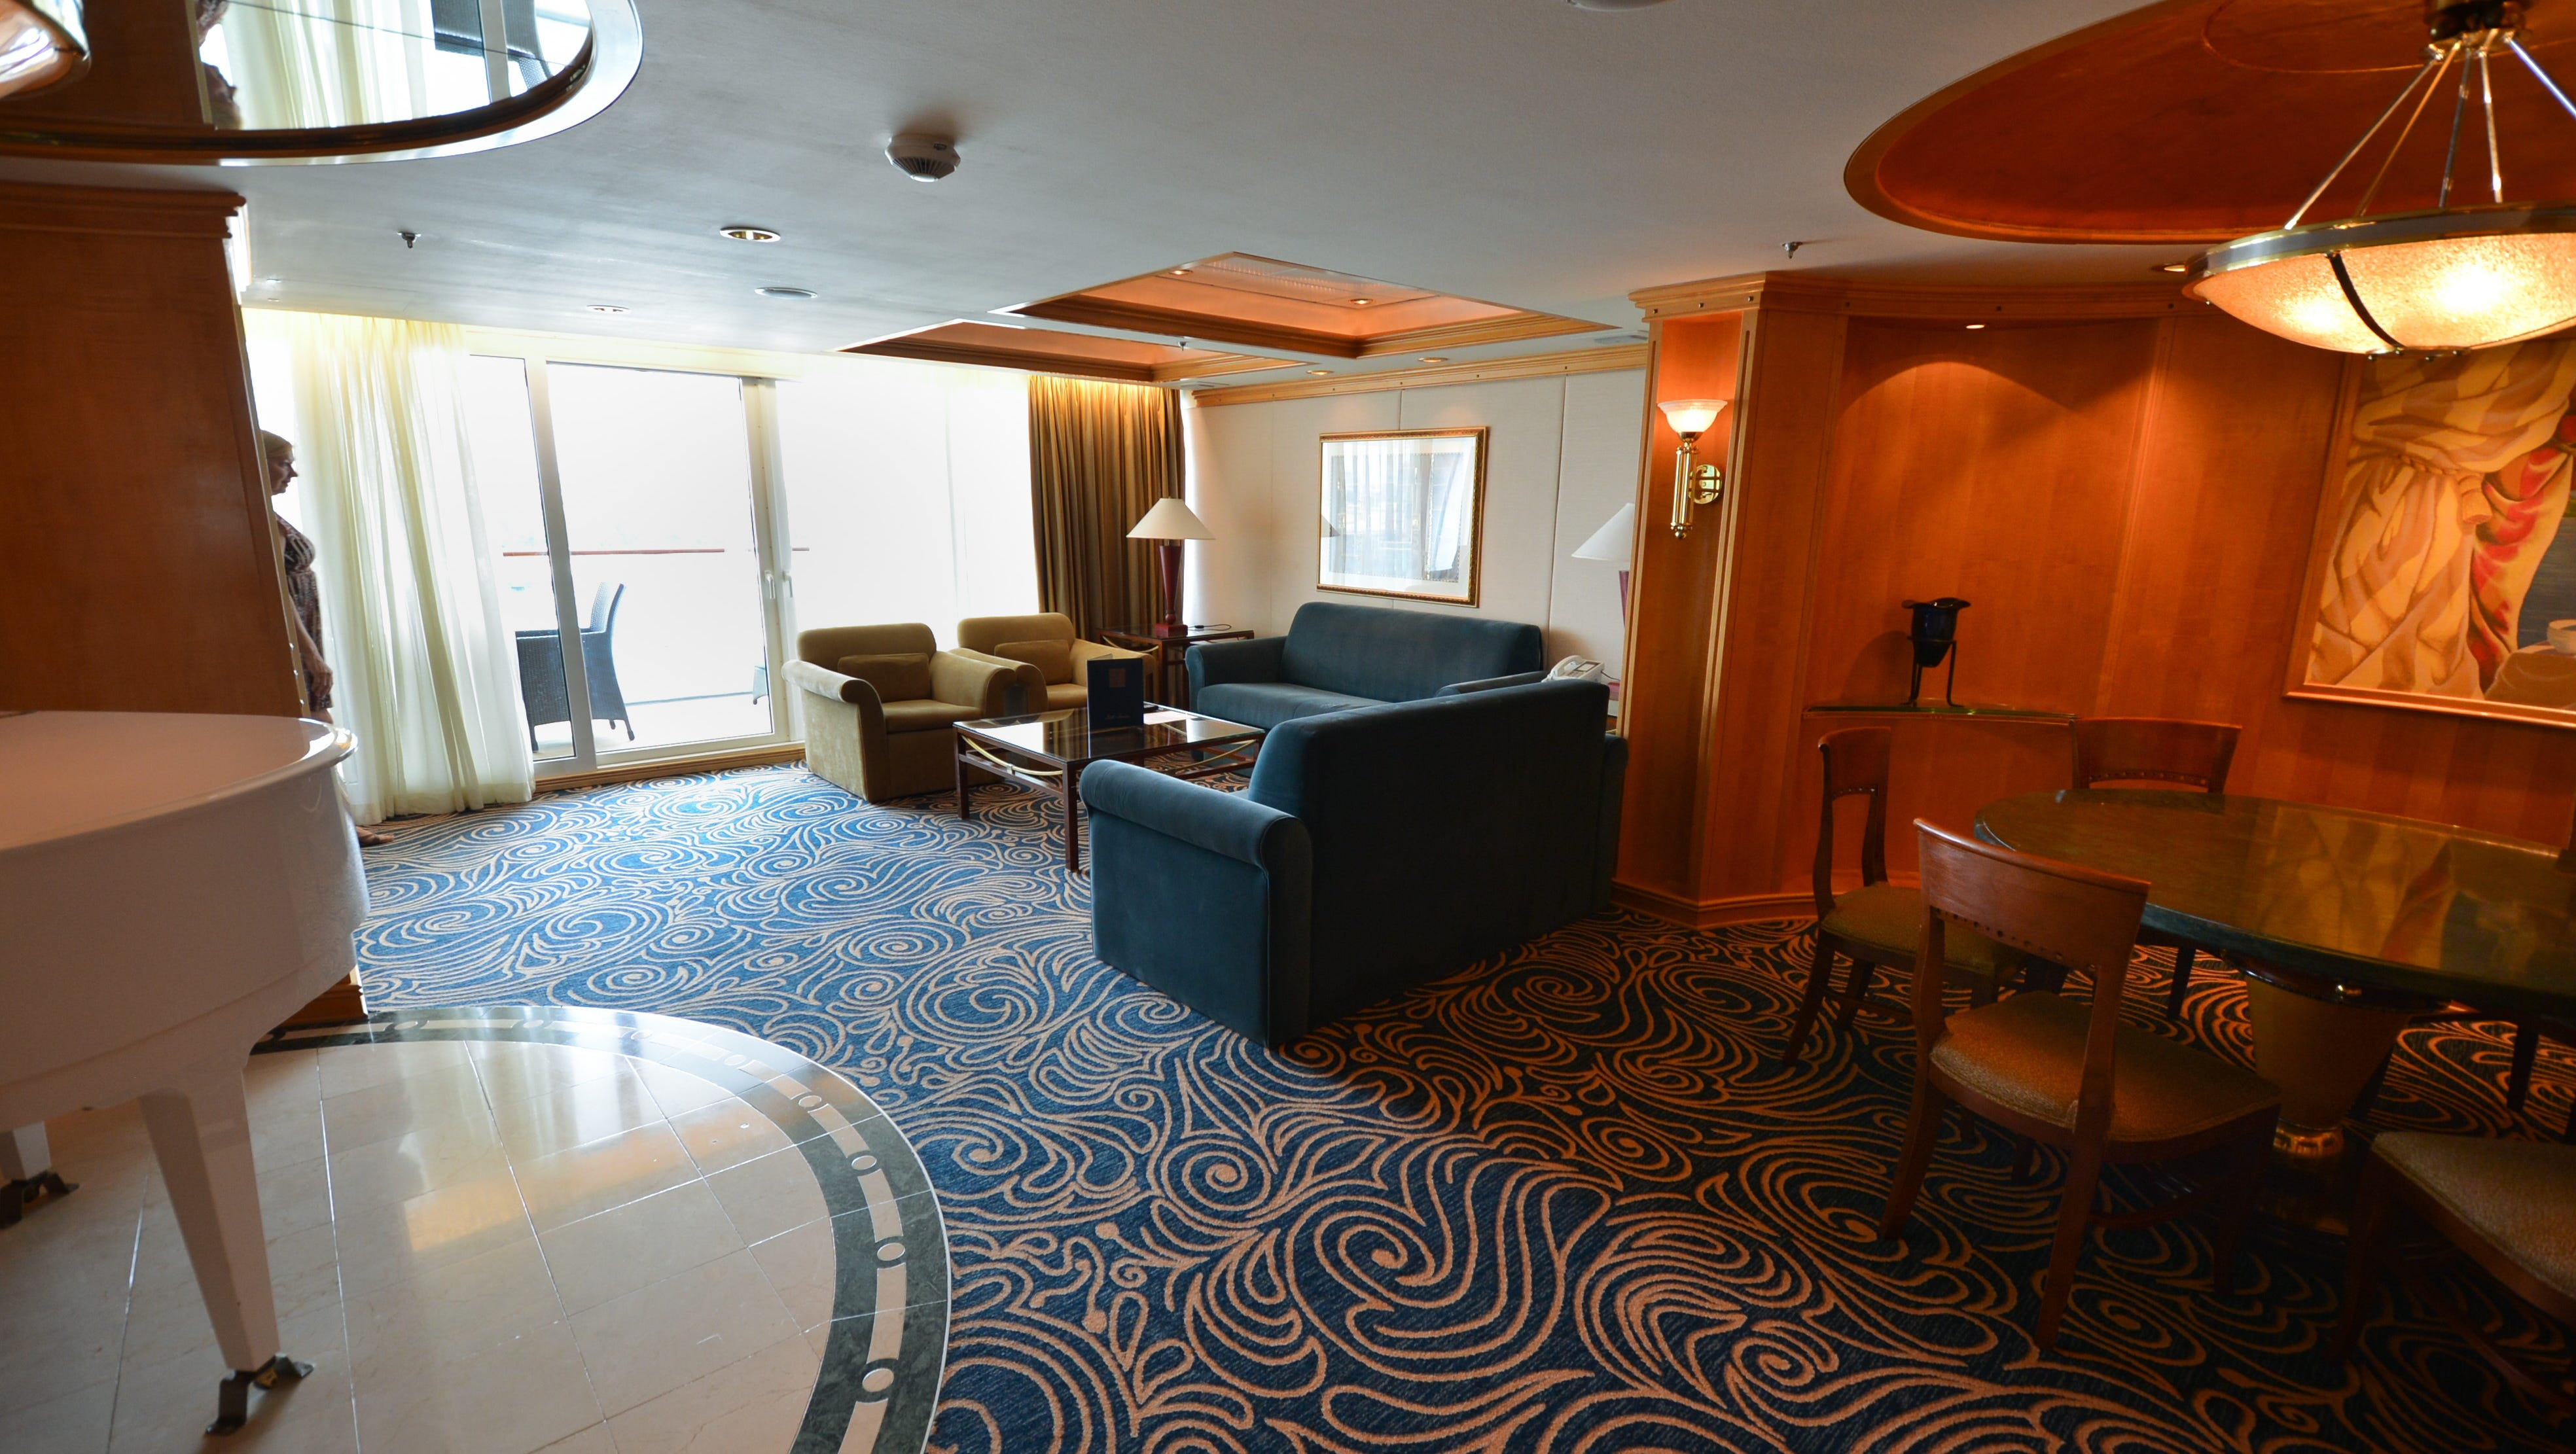 The largest cabin on Grandeur of the Seas is the 1,087-square-foot Royal Suite with Balcony on Deck 8, which features a large living area with a full-size sofa bed.